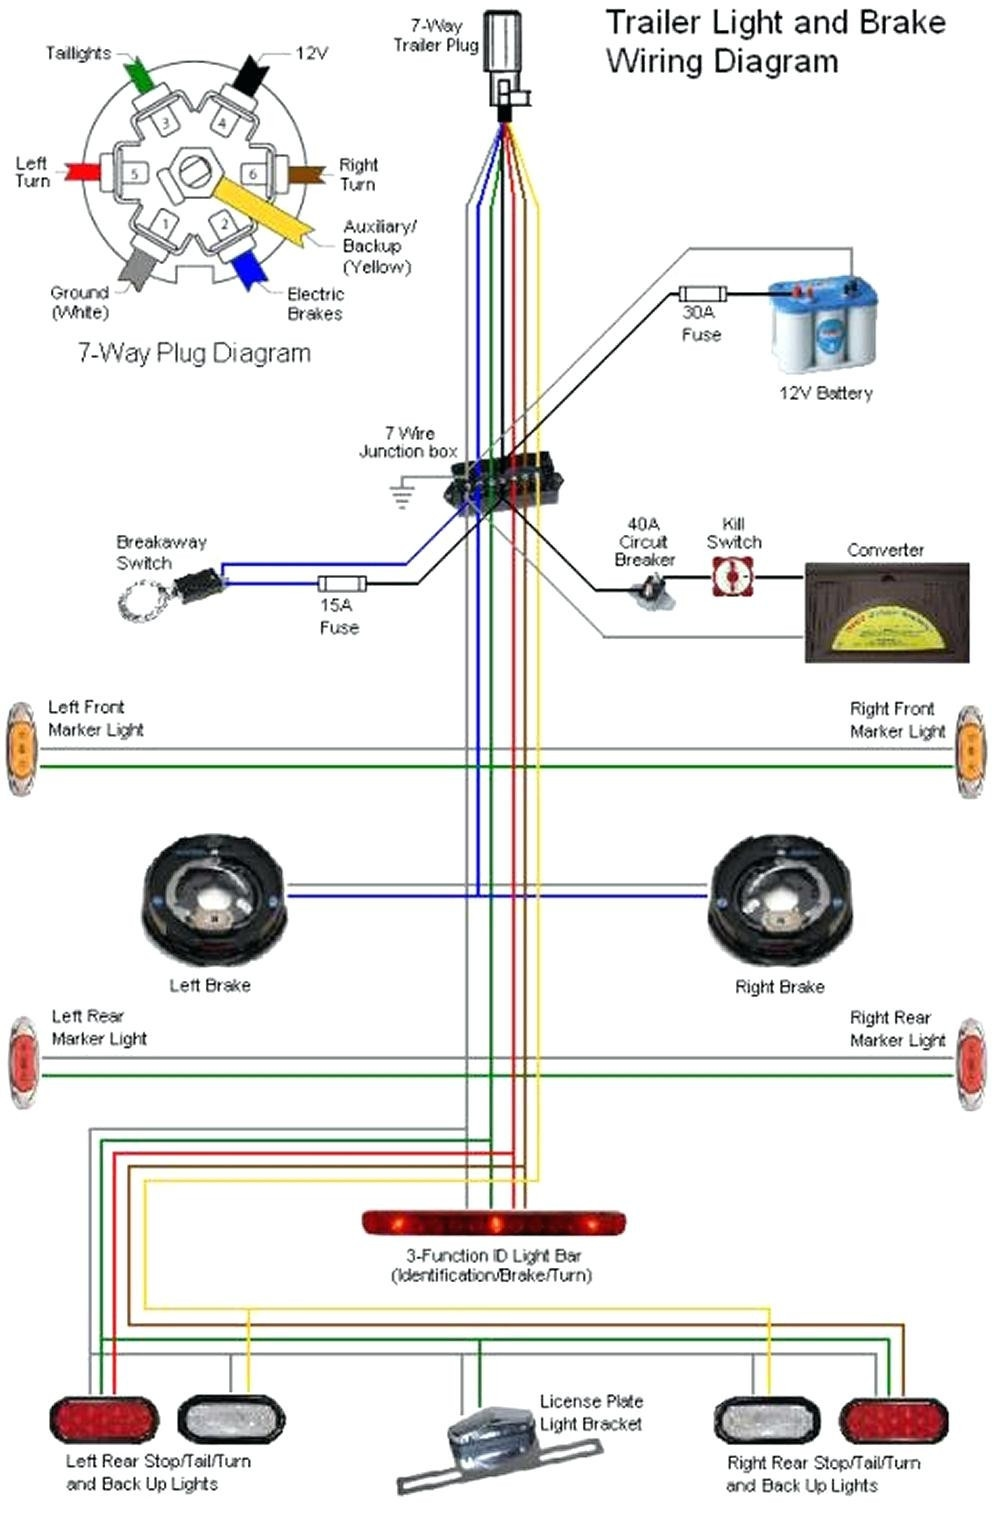 Swell 7 Pin To 4 Pin Trailer Wiring Diagram Free Wiring Diagram Wiring Cloud Animomajobocepmohammedshrineorg